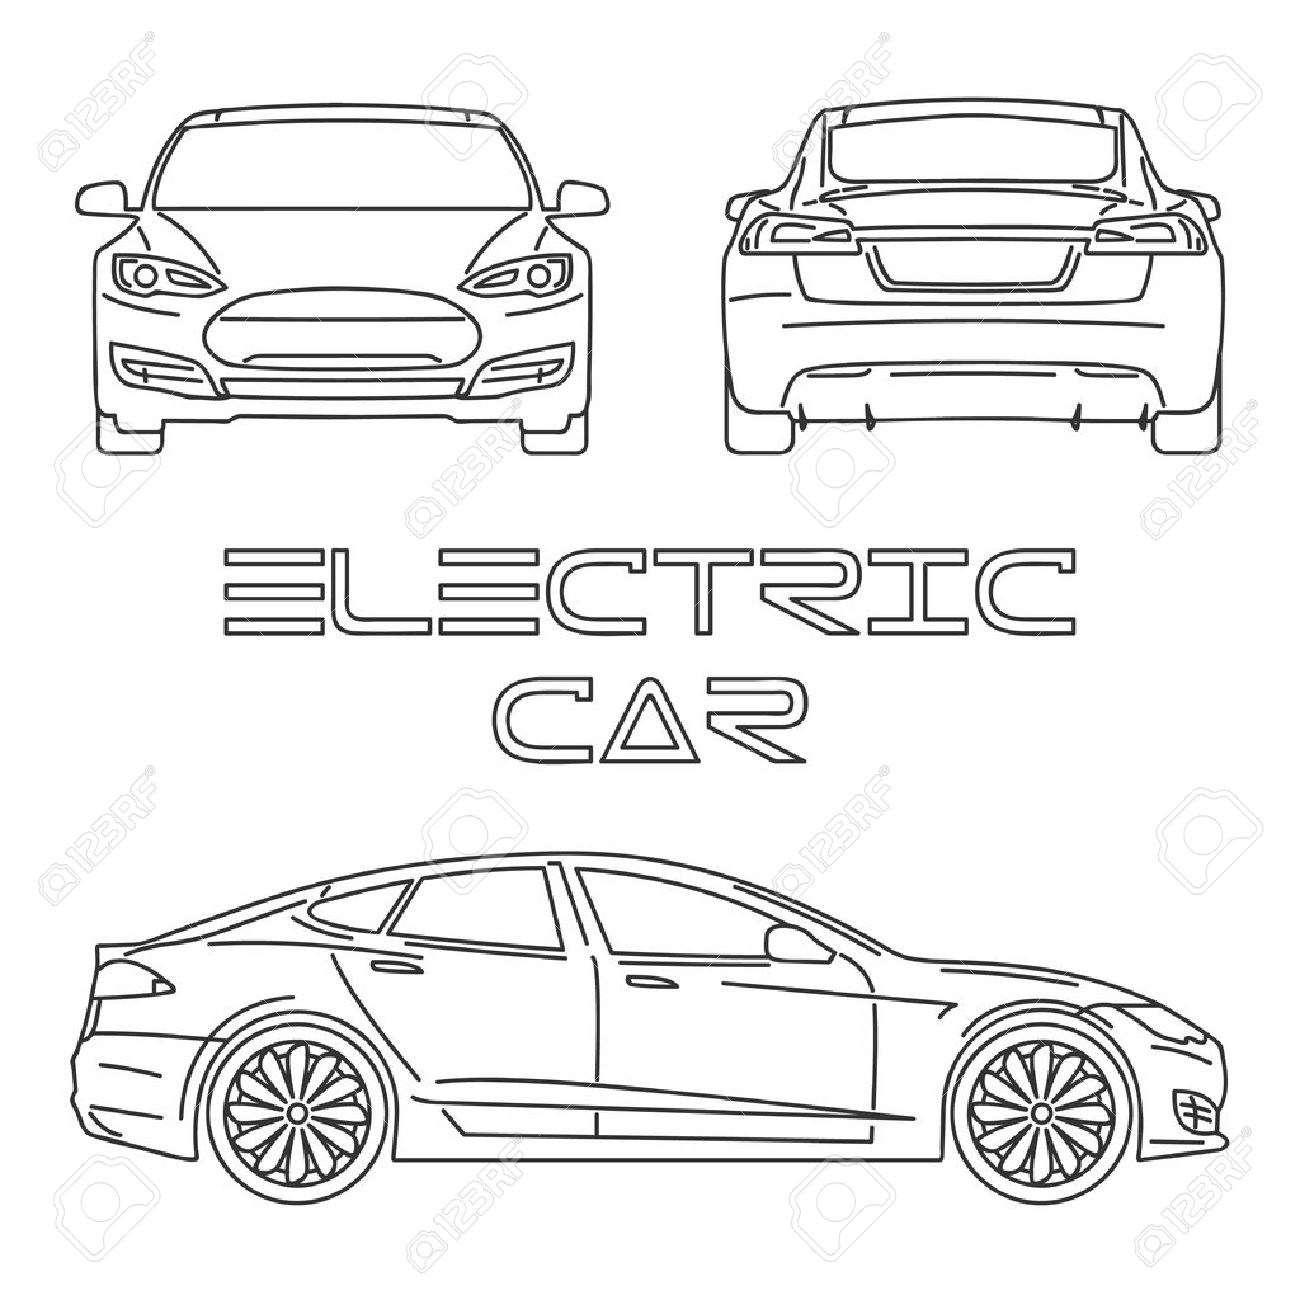 Side View Of Car Drawing At Getdrawings